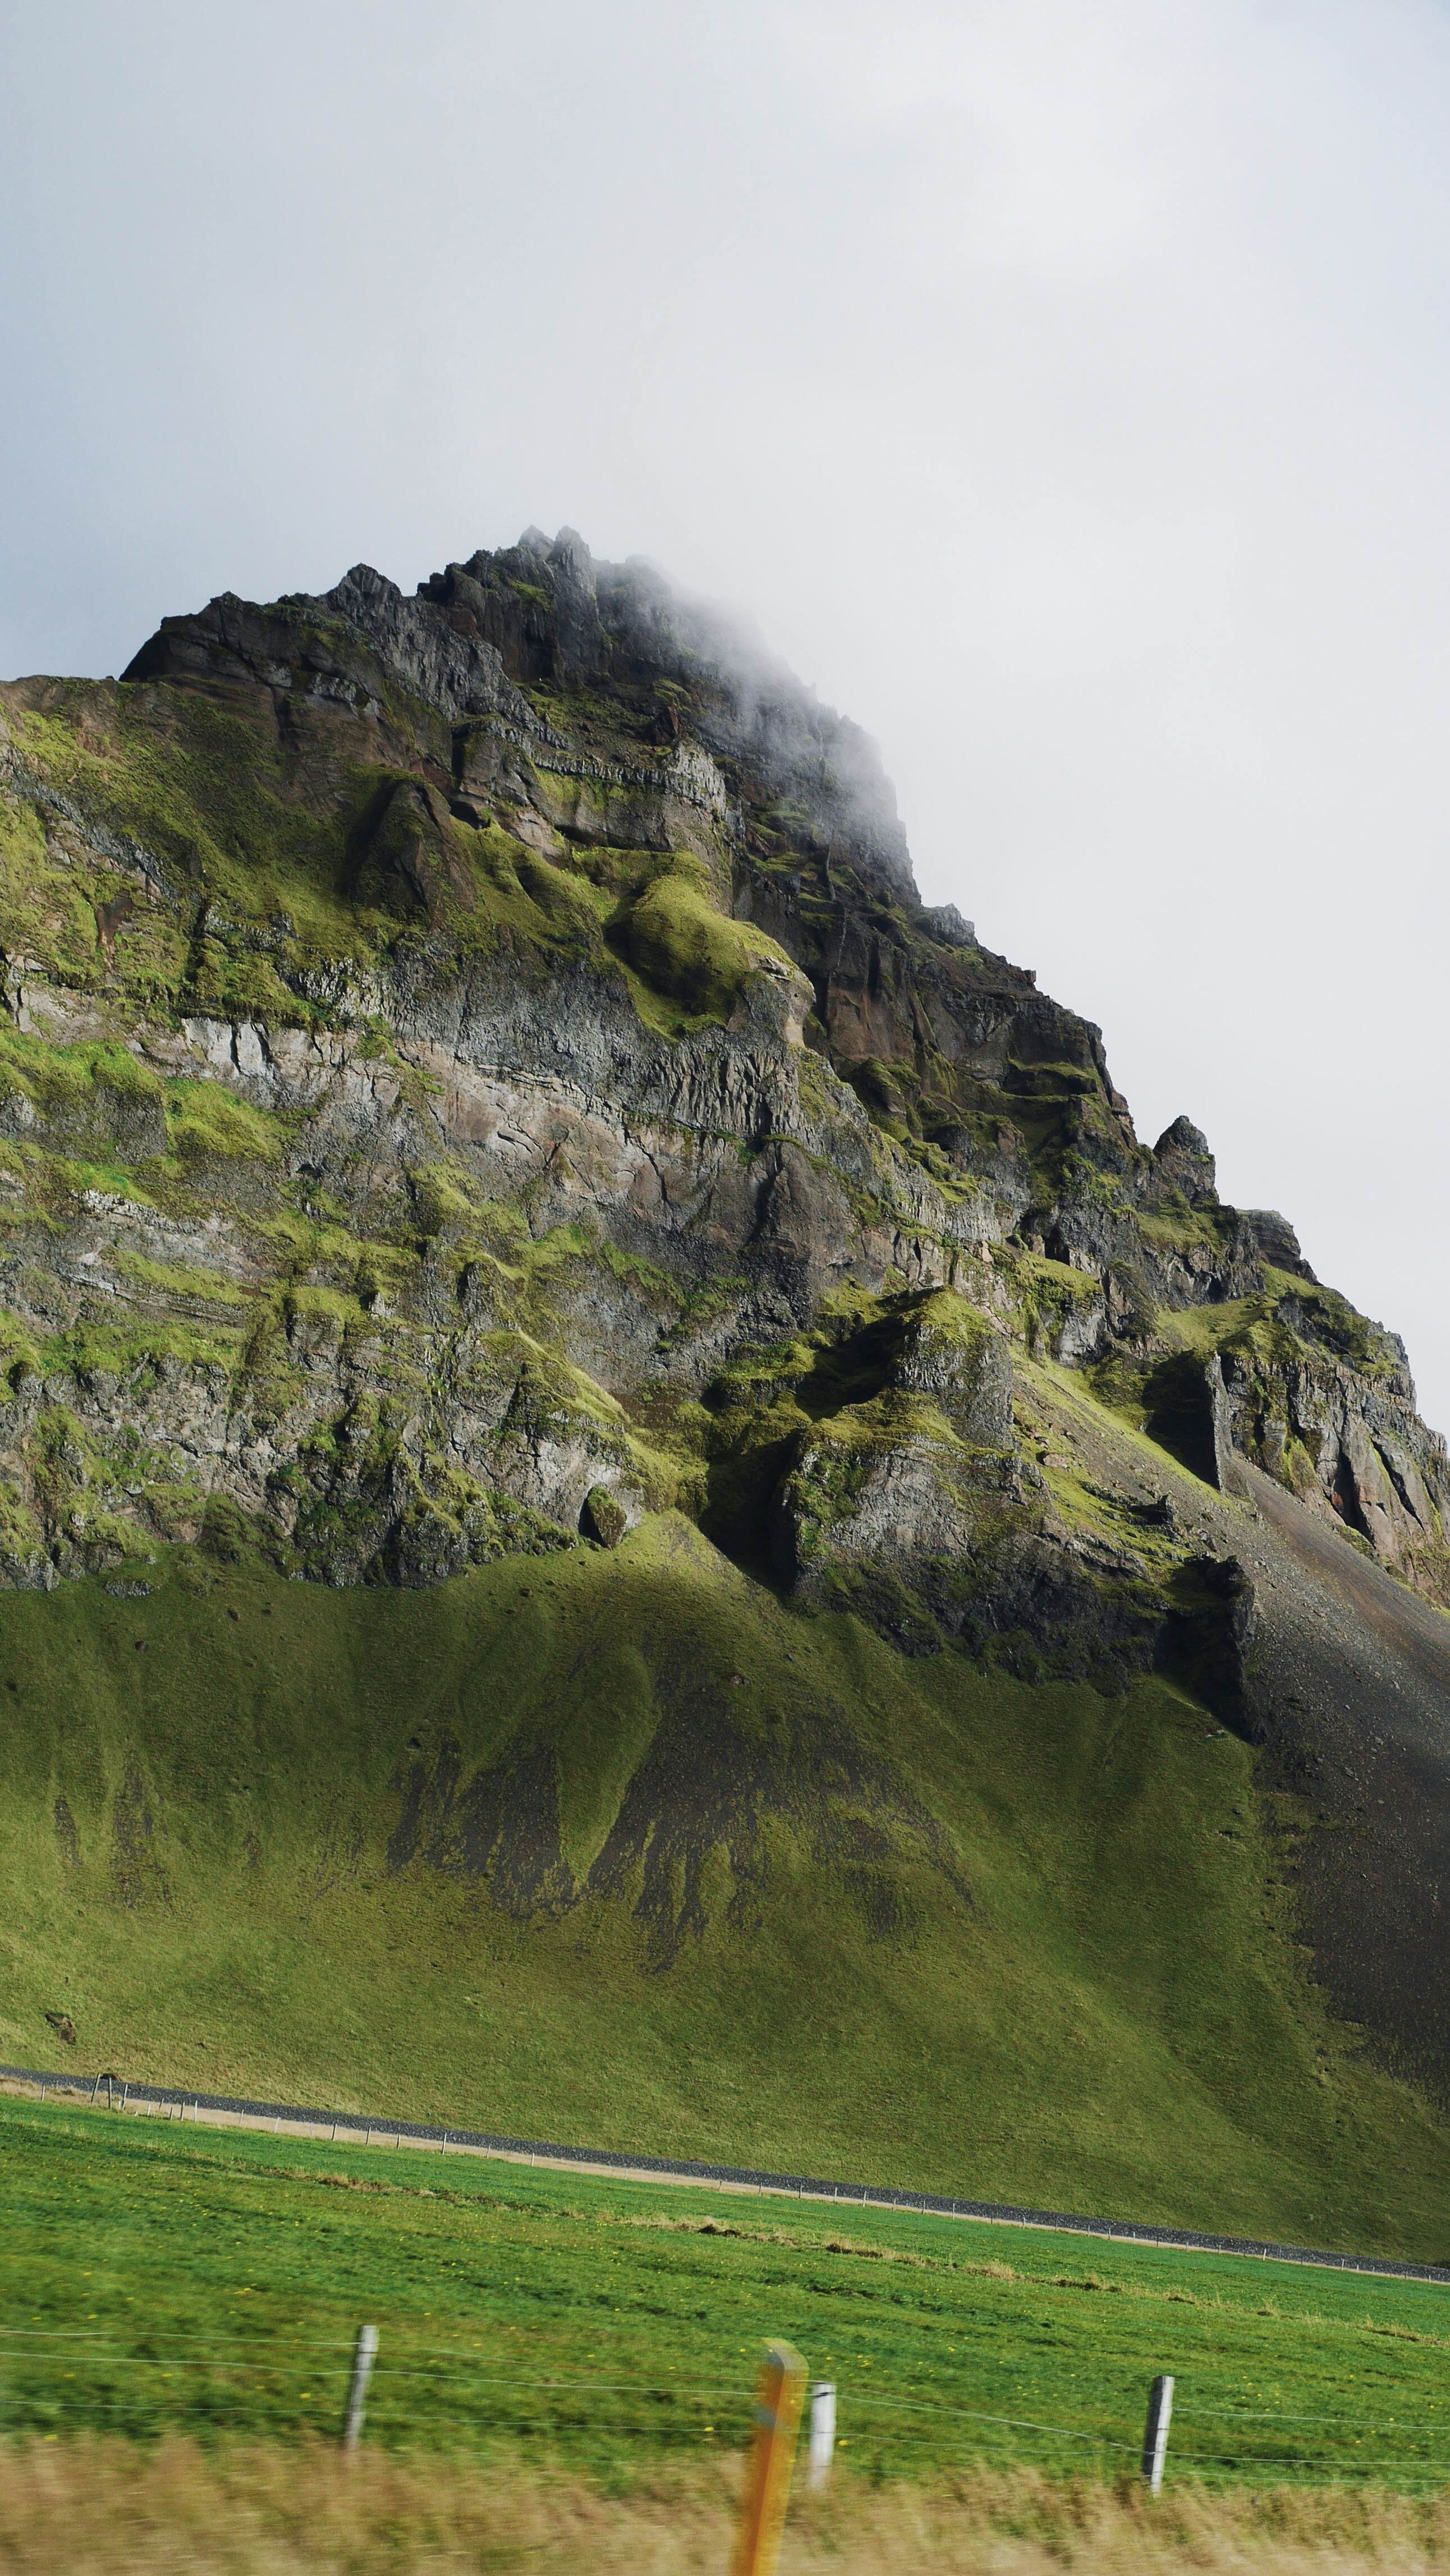 A craggy mountain with its top shrouded in fog rising above an asphalt road